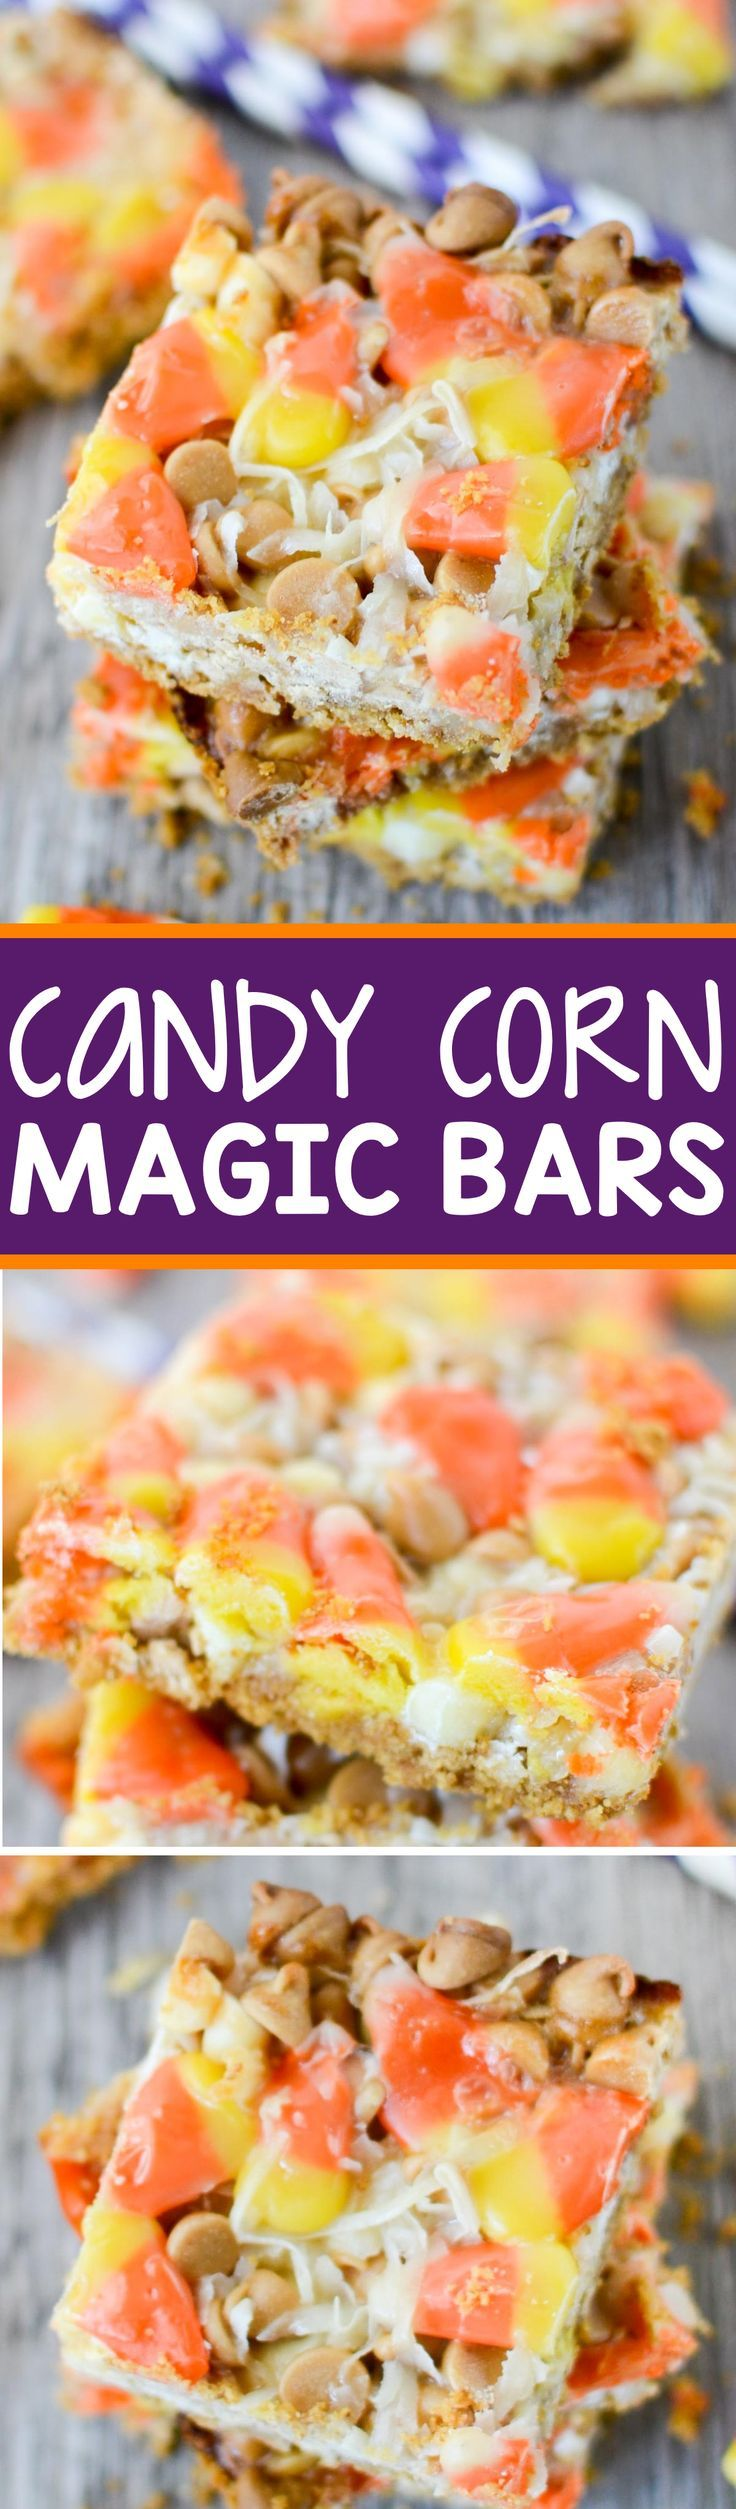 Candy Corn Magic Bars are perfect for Halloween! They have a graham cracker crust and are topped with white chocolate and peanut butter chips, coconut, and candy corn!